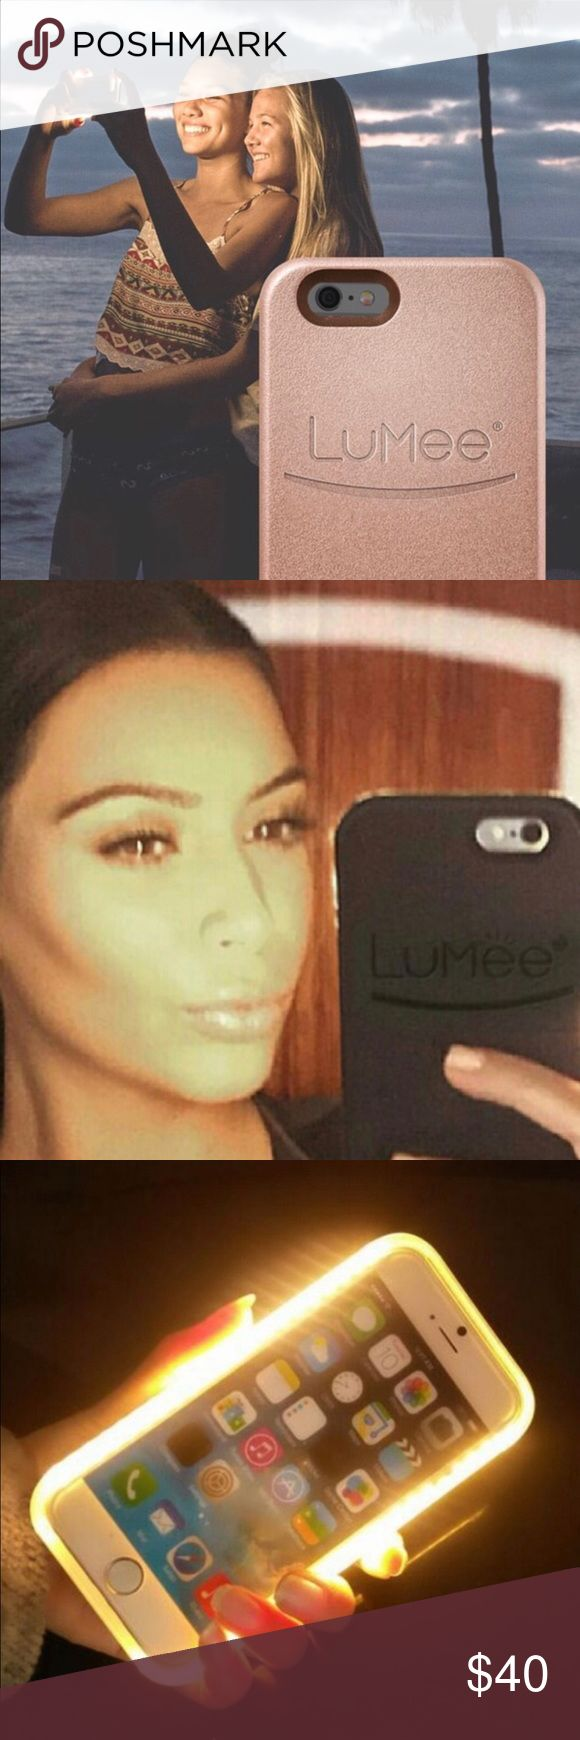 NWT PINK Lumee selfie case NWT Lumee selfie case for iPhone 6/6s PLUS. Color for this case is PINK. Charger included. Perfect your selfies with the case that all the Kardashians use!! NO TRADES. PRICE IS FIRM. On hand and ready to ship! PINK Victoria's Secret Accessories Phone Cases